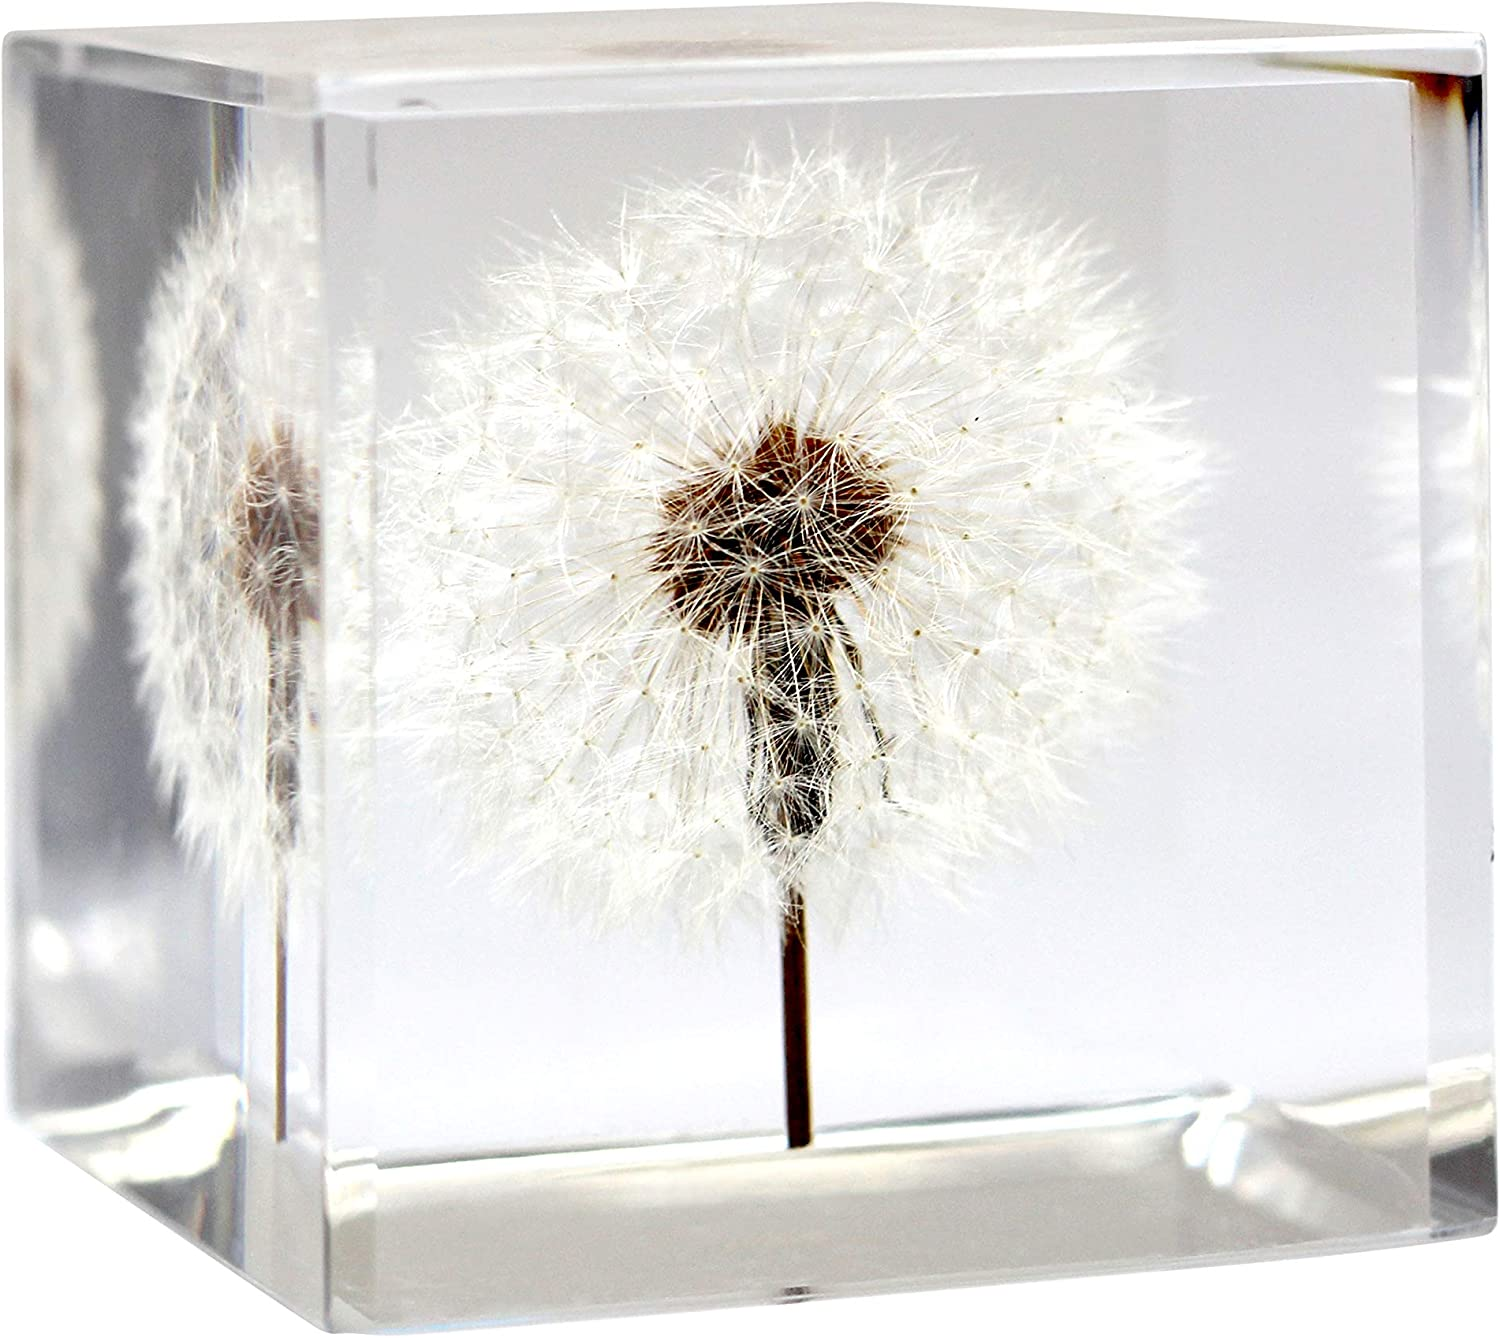 Dandelion Paperweight Cube - A Real Dandelion Puff! (Cube and Cuboid) (Cube (2.25